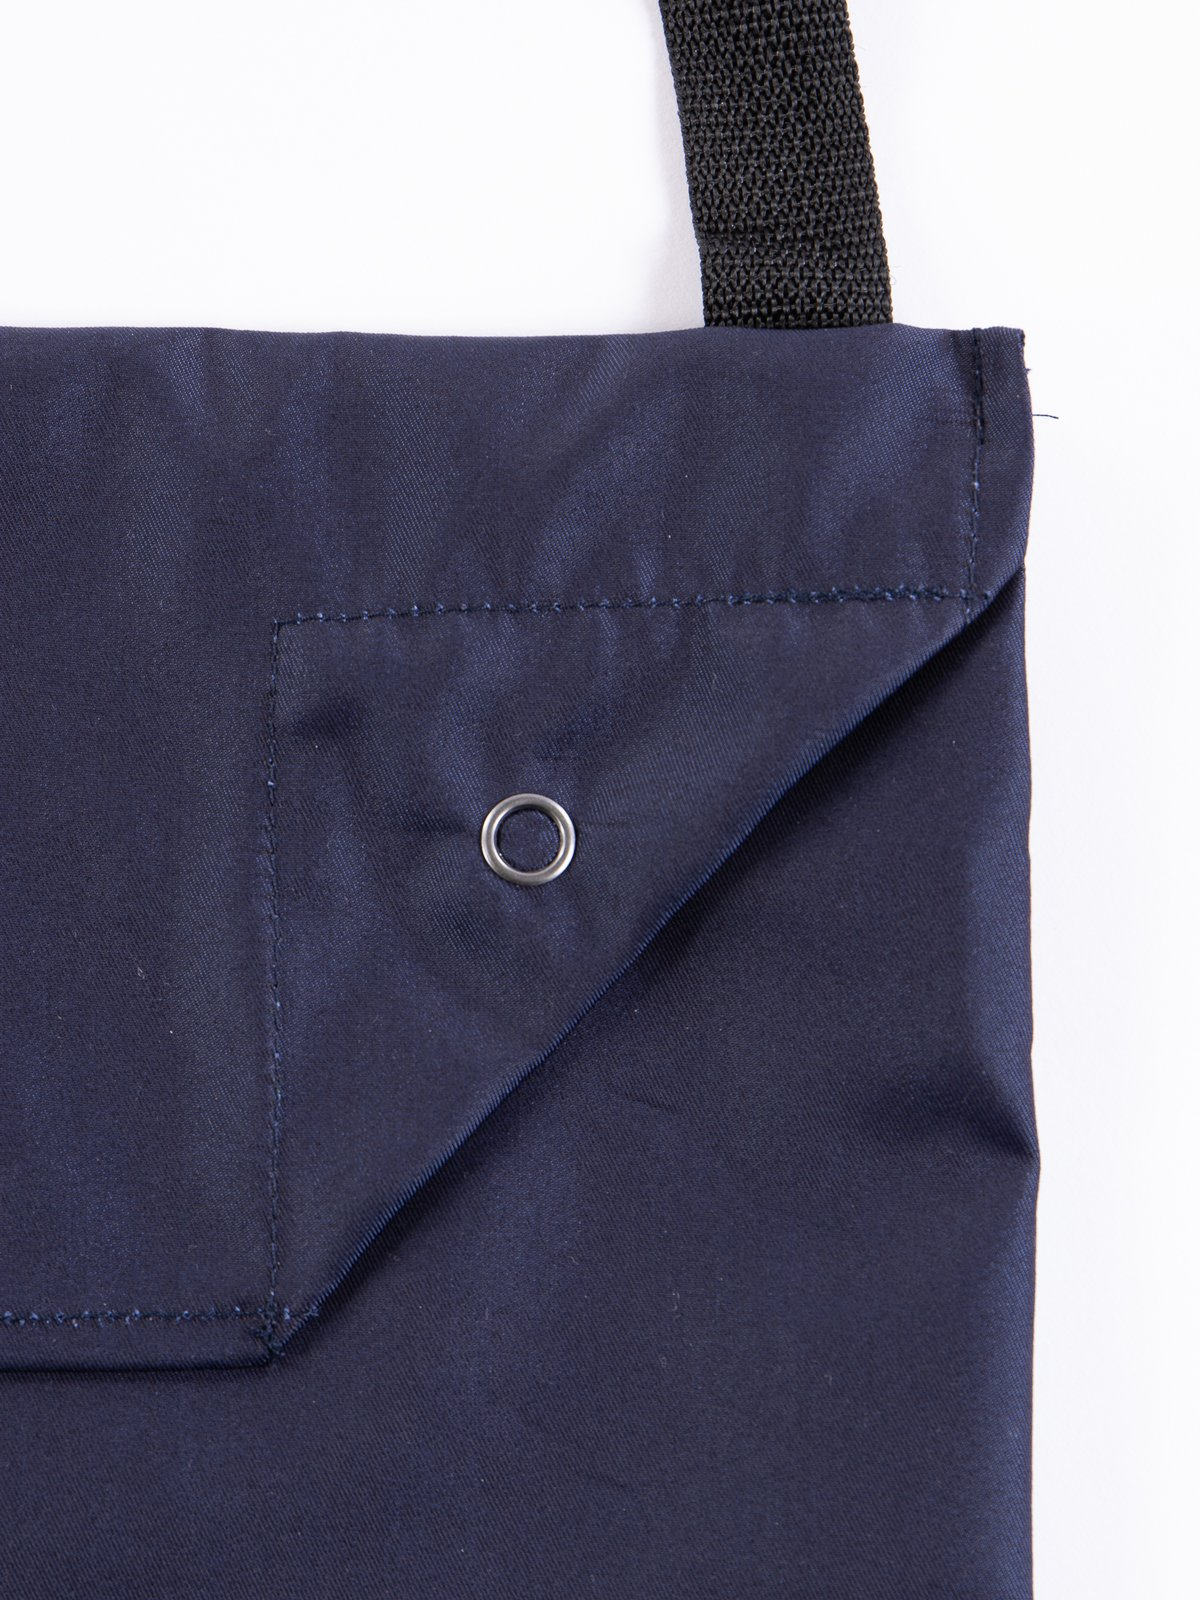 Navy PC Iridescent Twill Shoulder Pouch - Image 3